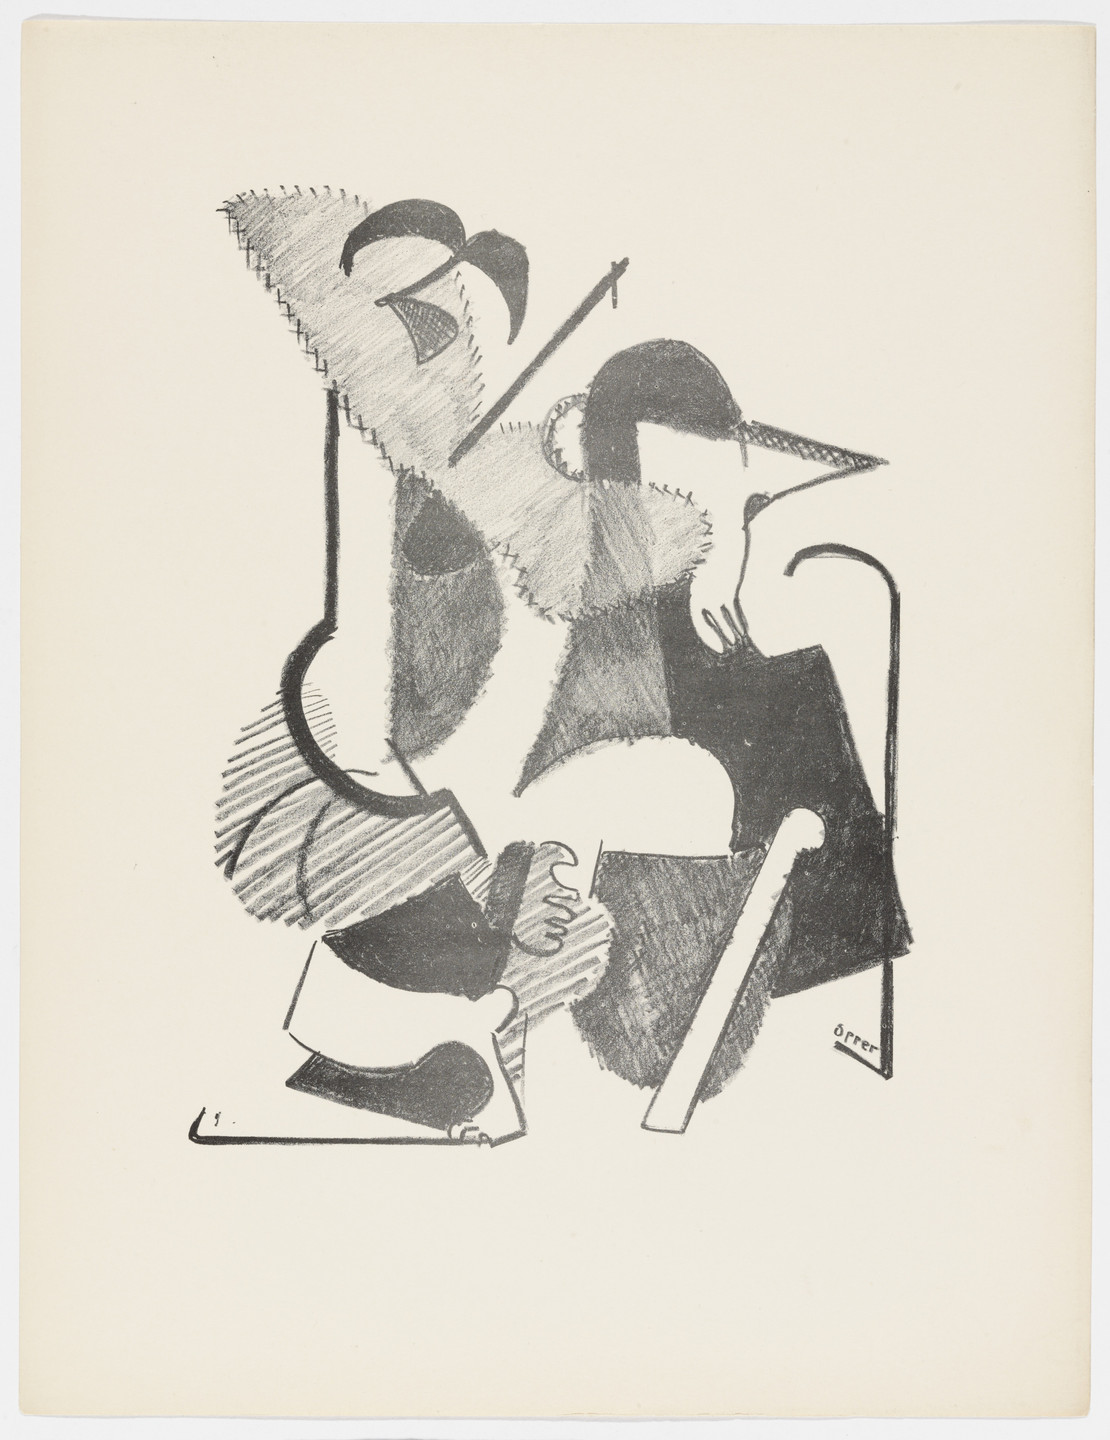 John Opper. Untitled from American Abstract Artists. 1937